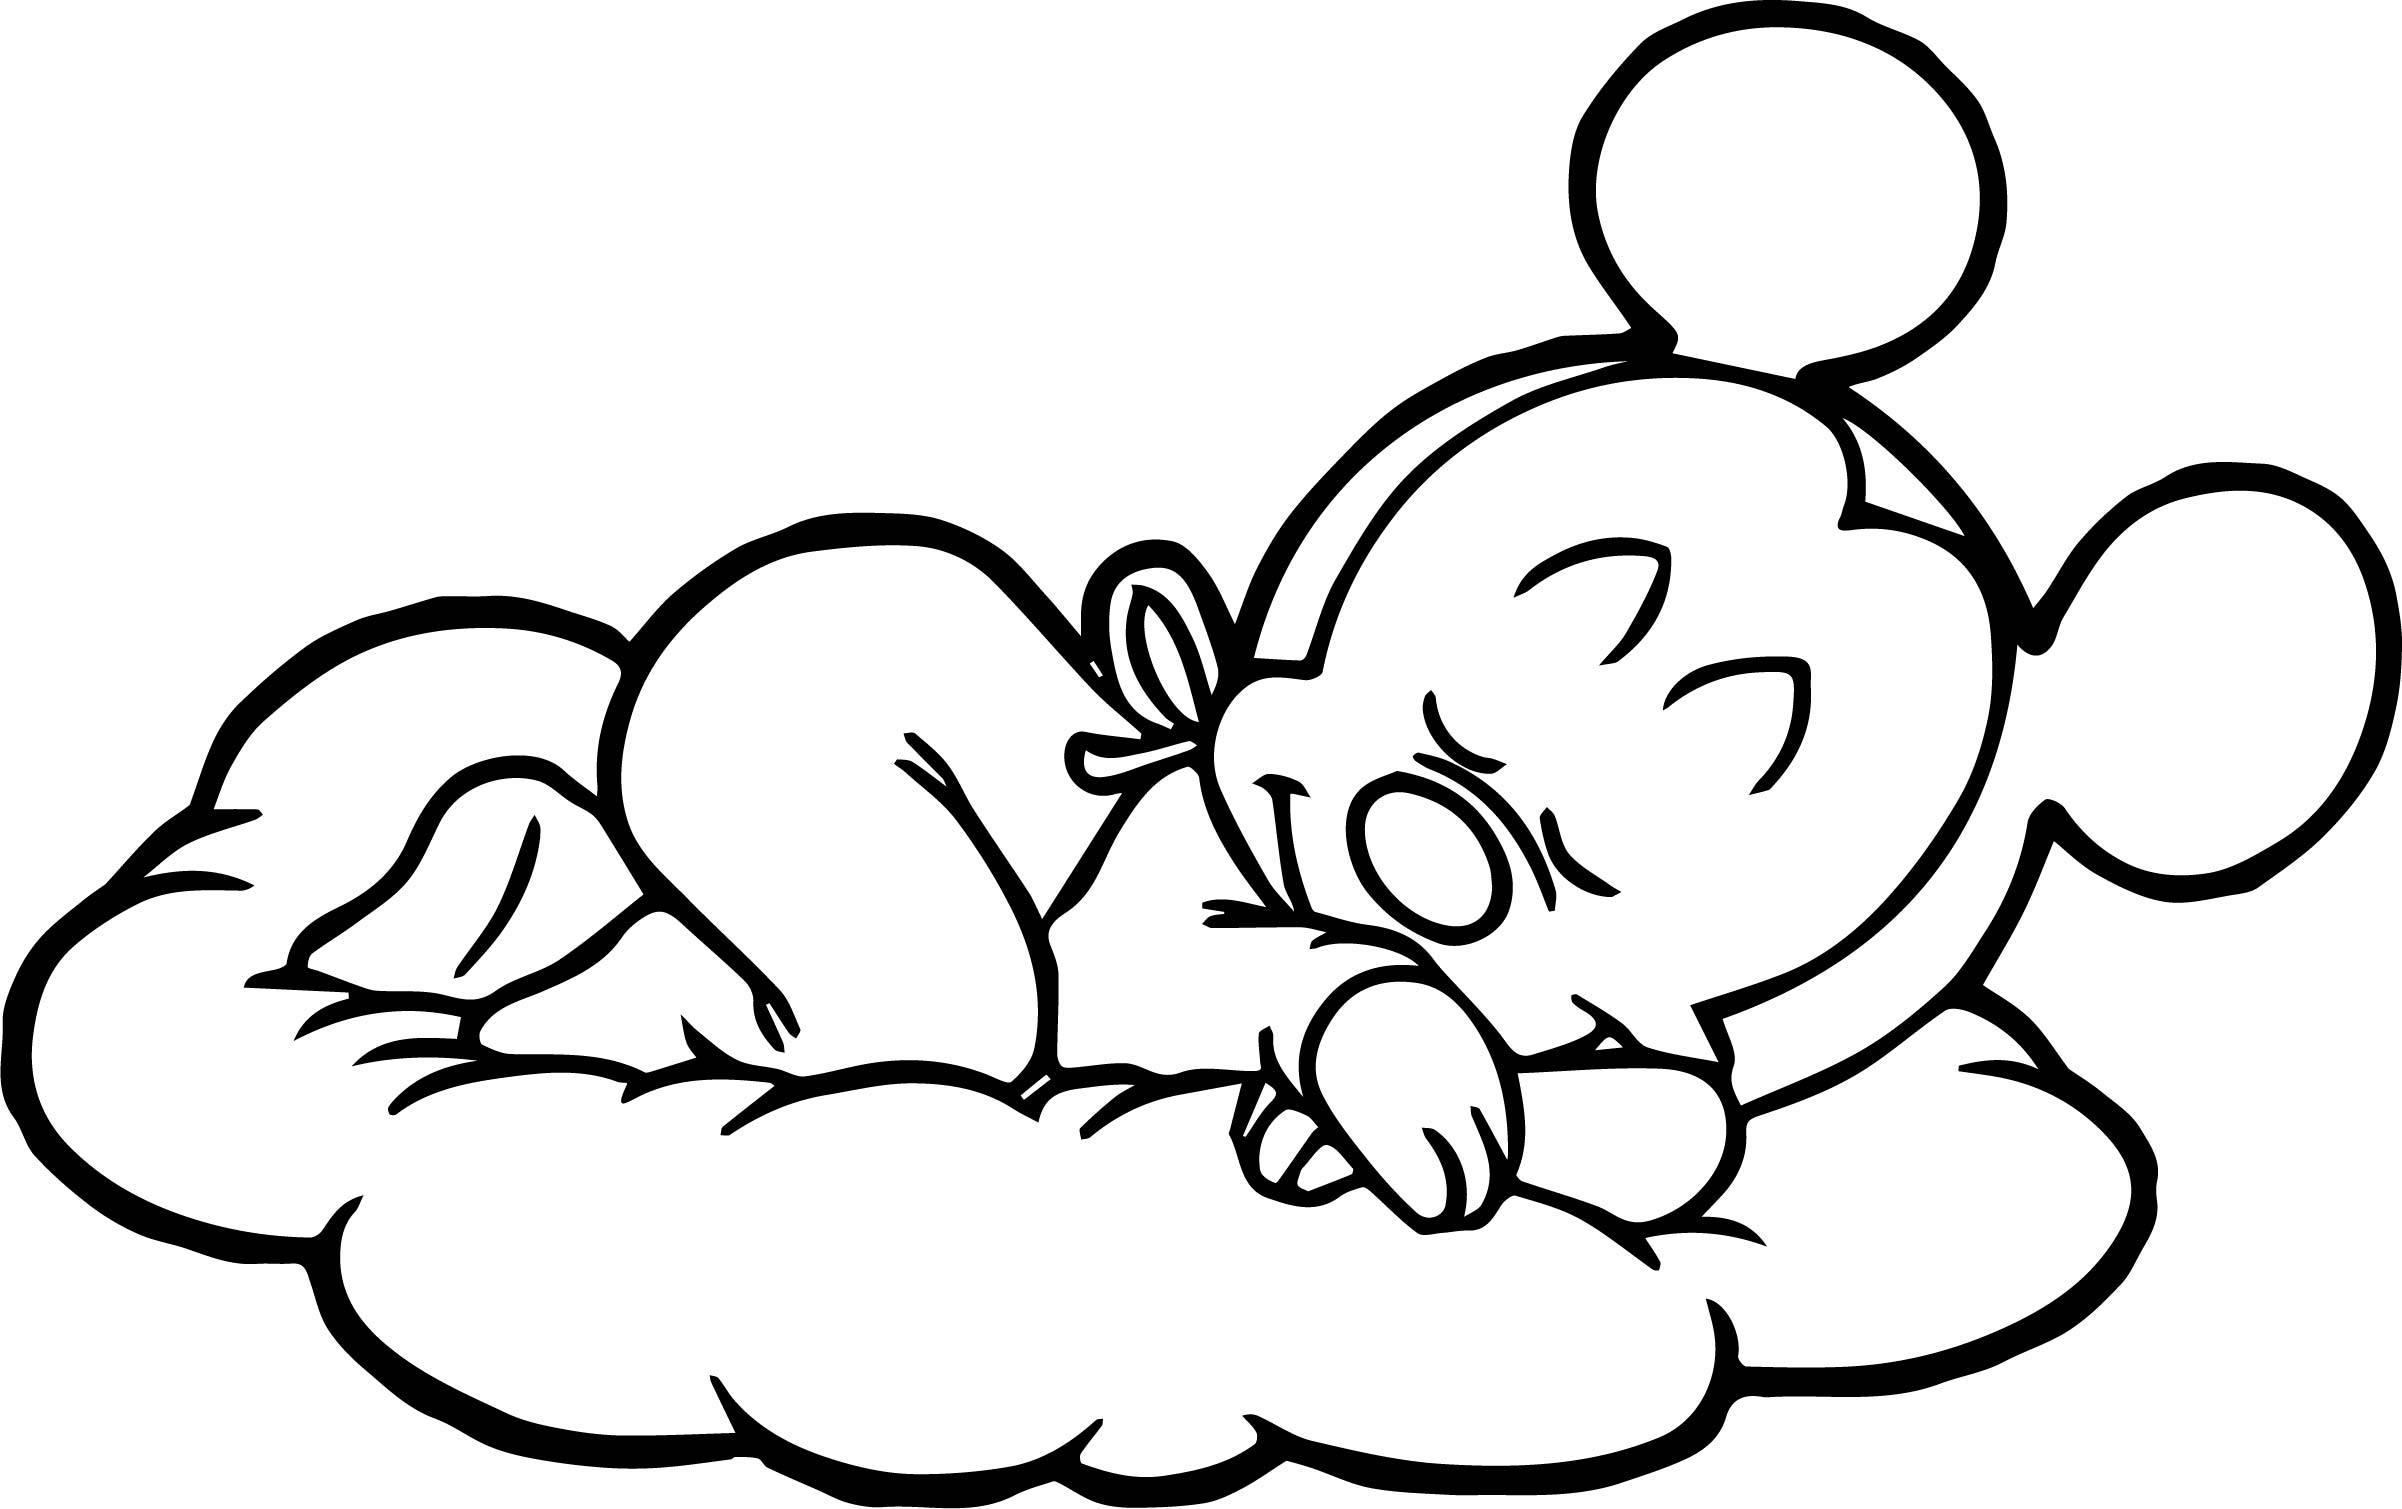 Storm Cloud Coloring Pages